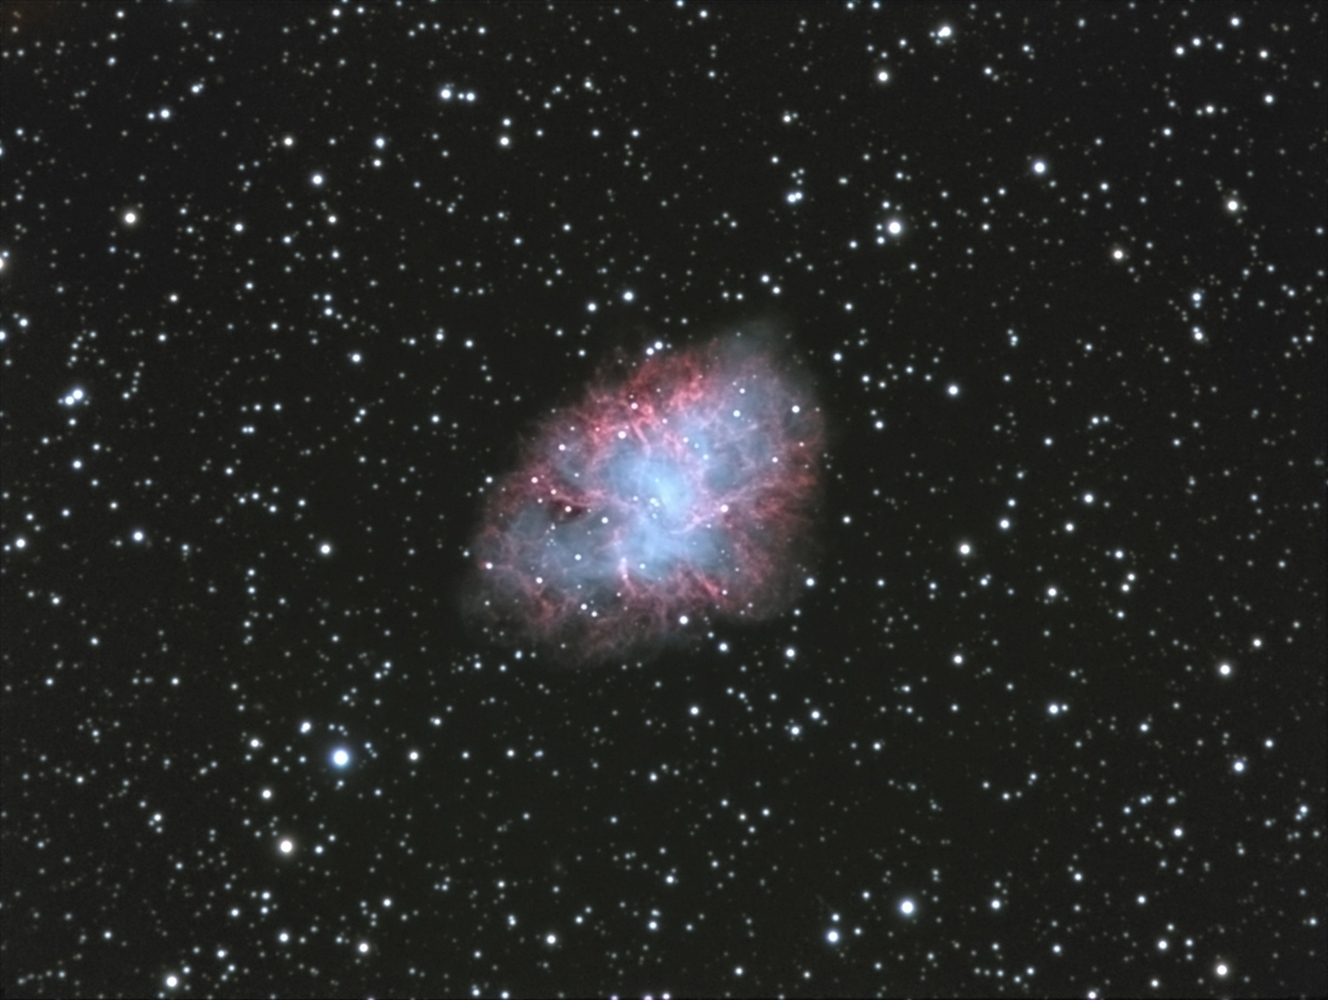 M1 from BMV Observatories